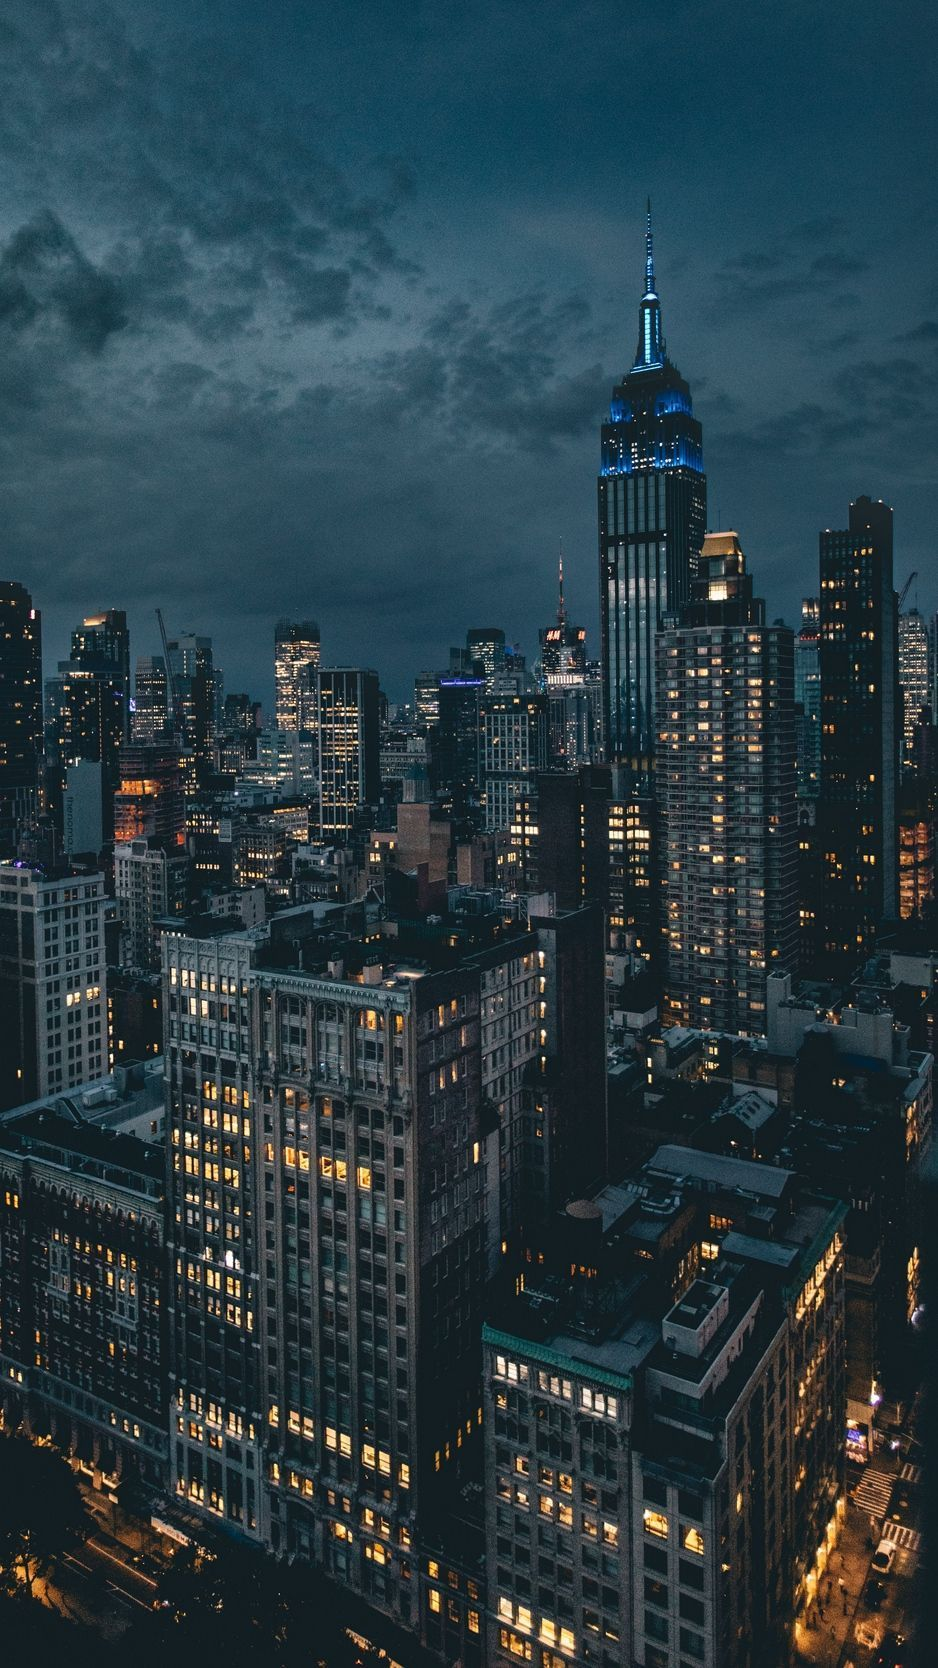 New York City Night Iphone Wallpapers Top Free New York City Night Iphone Backgrounds Wallpaperaccess